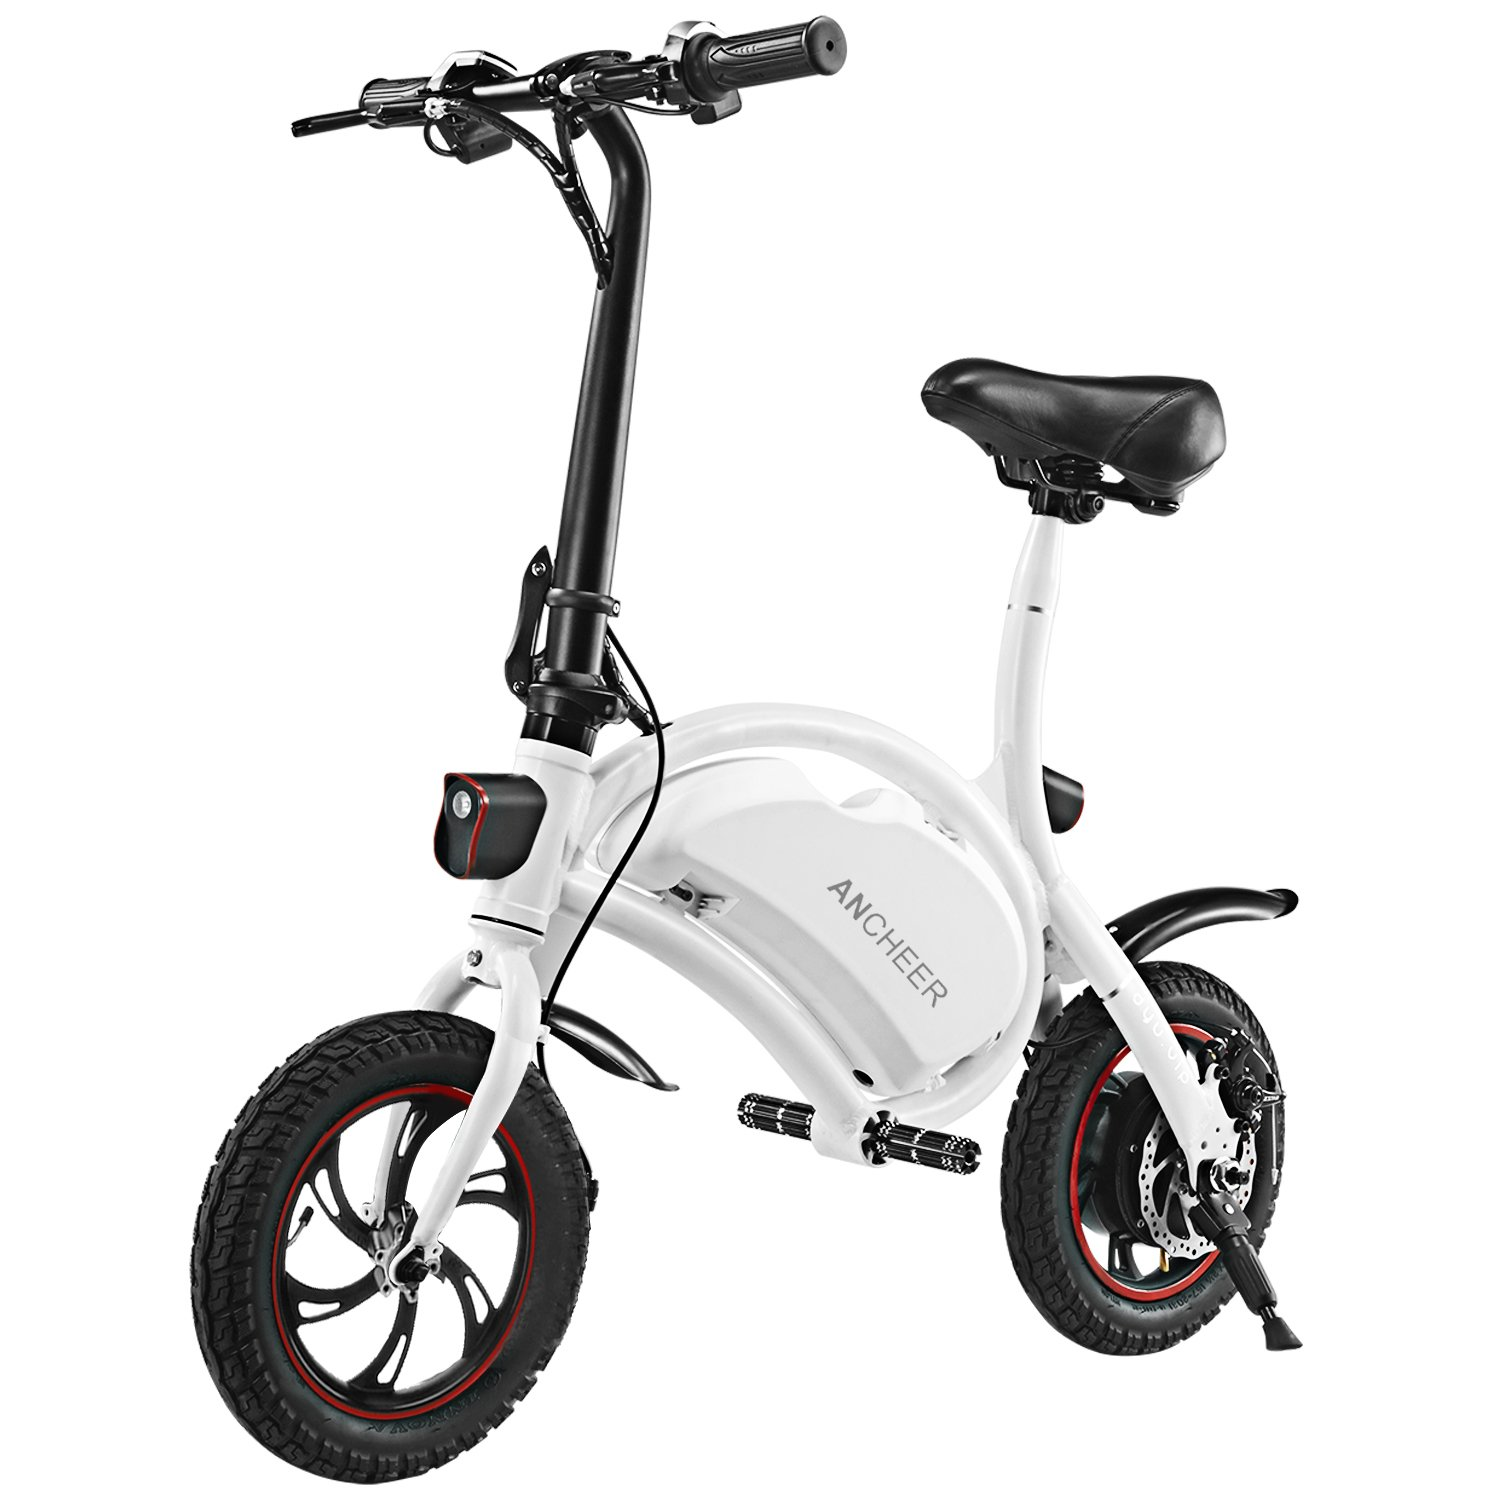 ANCHEER Folding Electric Bicycle/E-Bike/Scooter 350W Ebike with 12 Mile Range, APP Speed Setting (Seller-Fulfilled White-6AH)